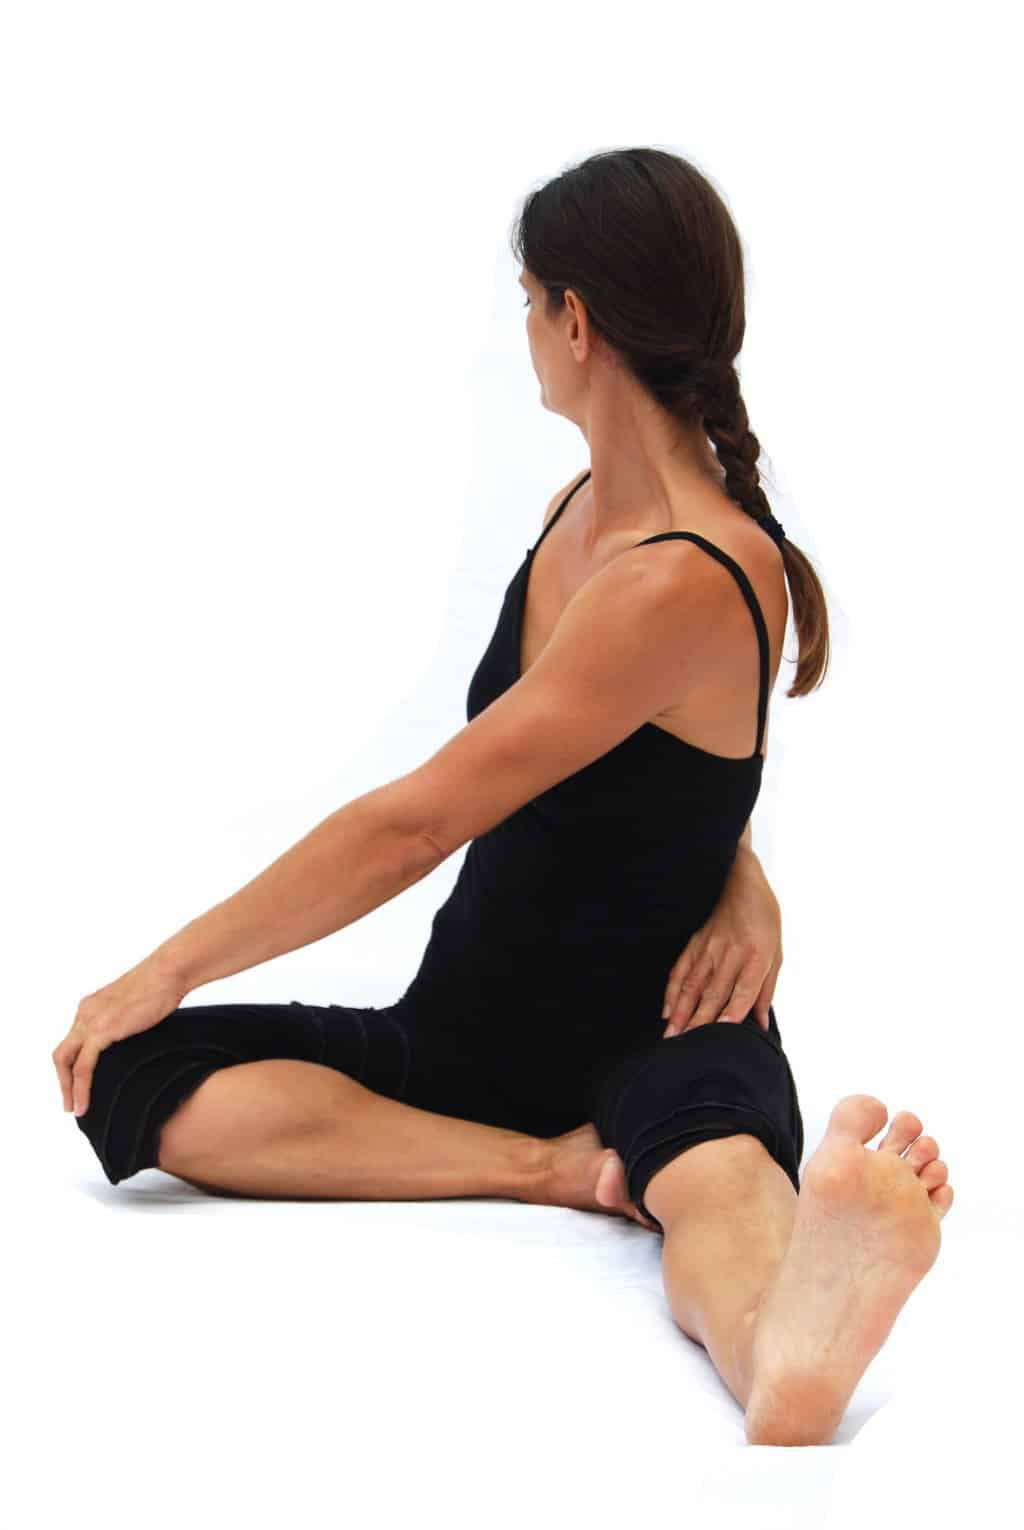 Parivrtta janu sirsasana reversed knee head pose preparation Opale Yoga ibiza